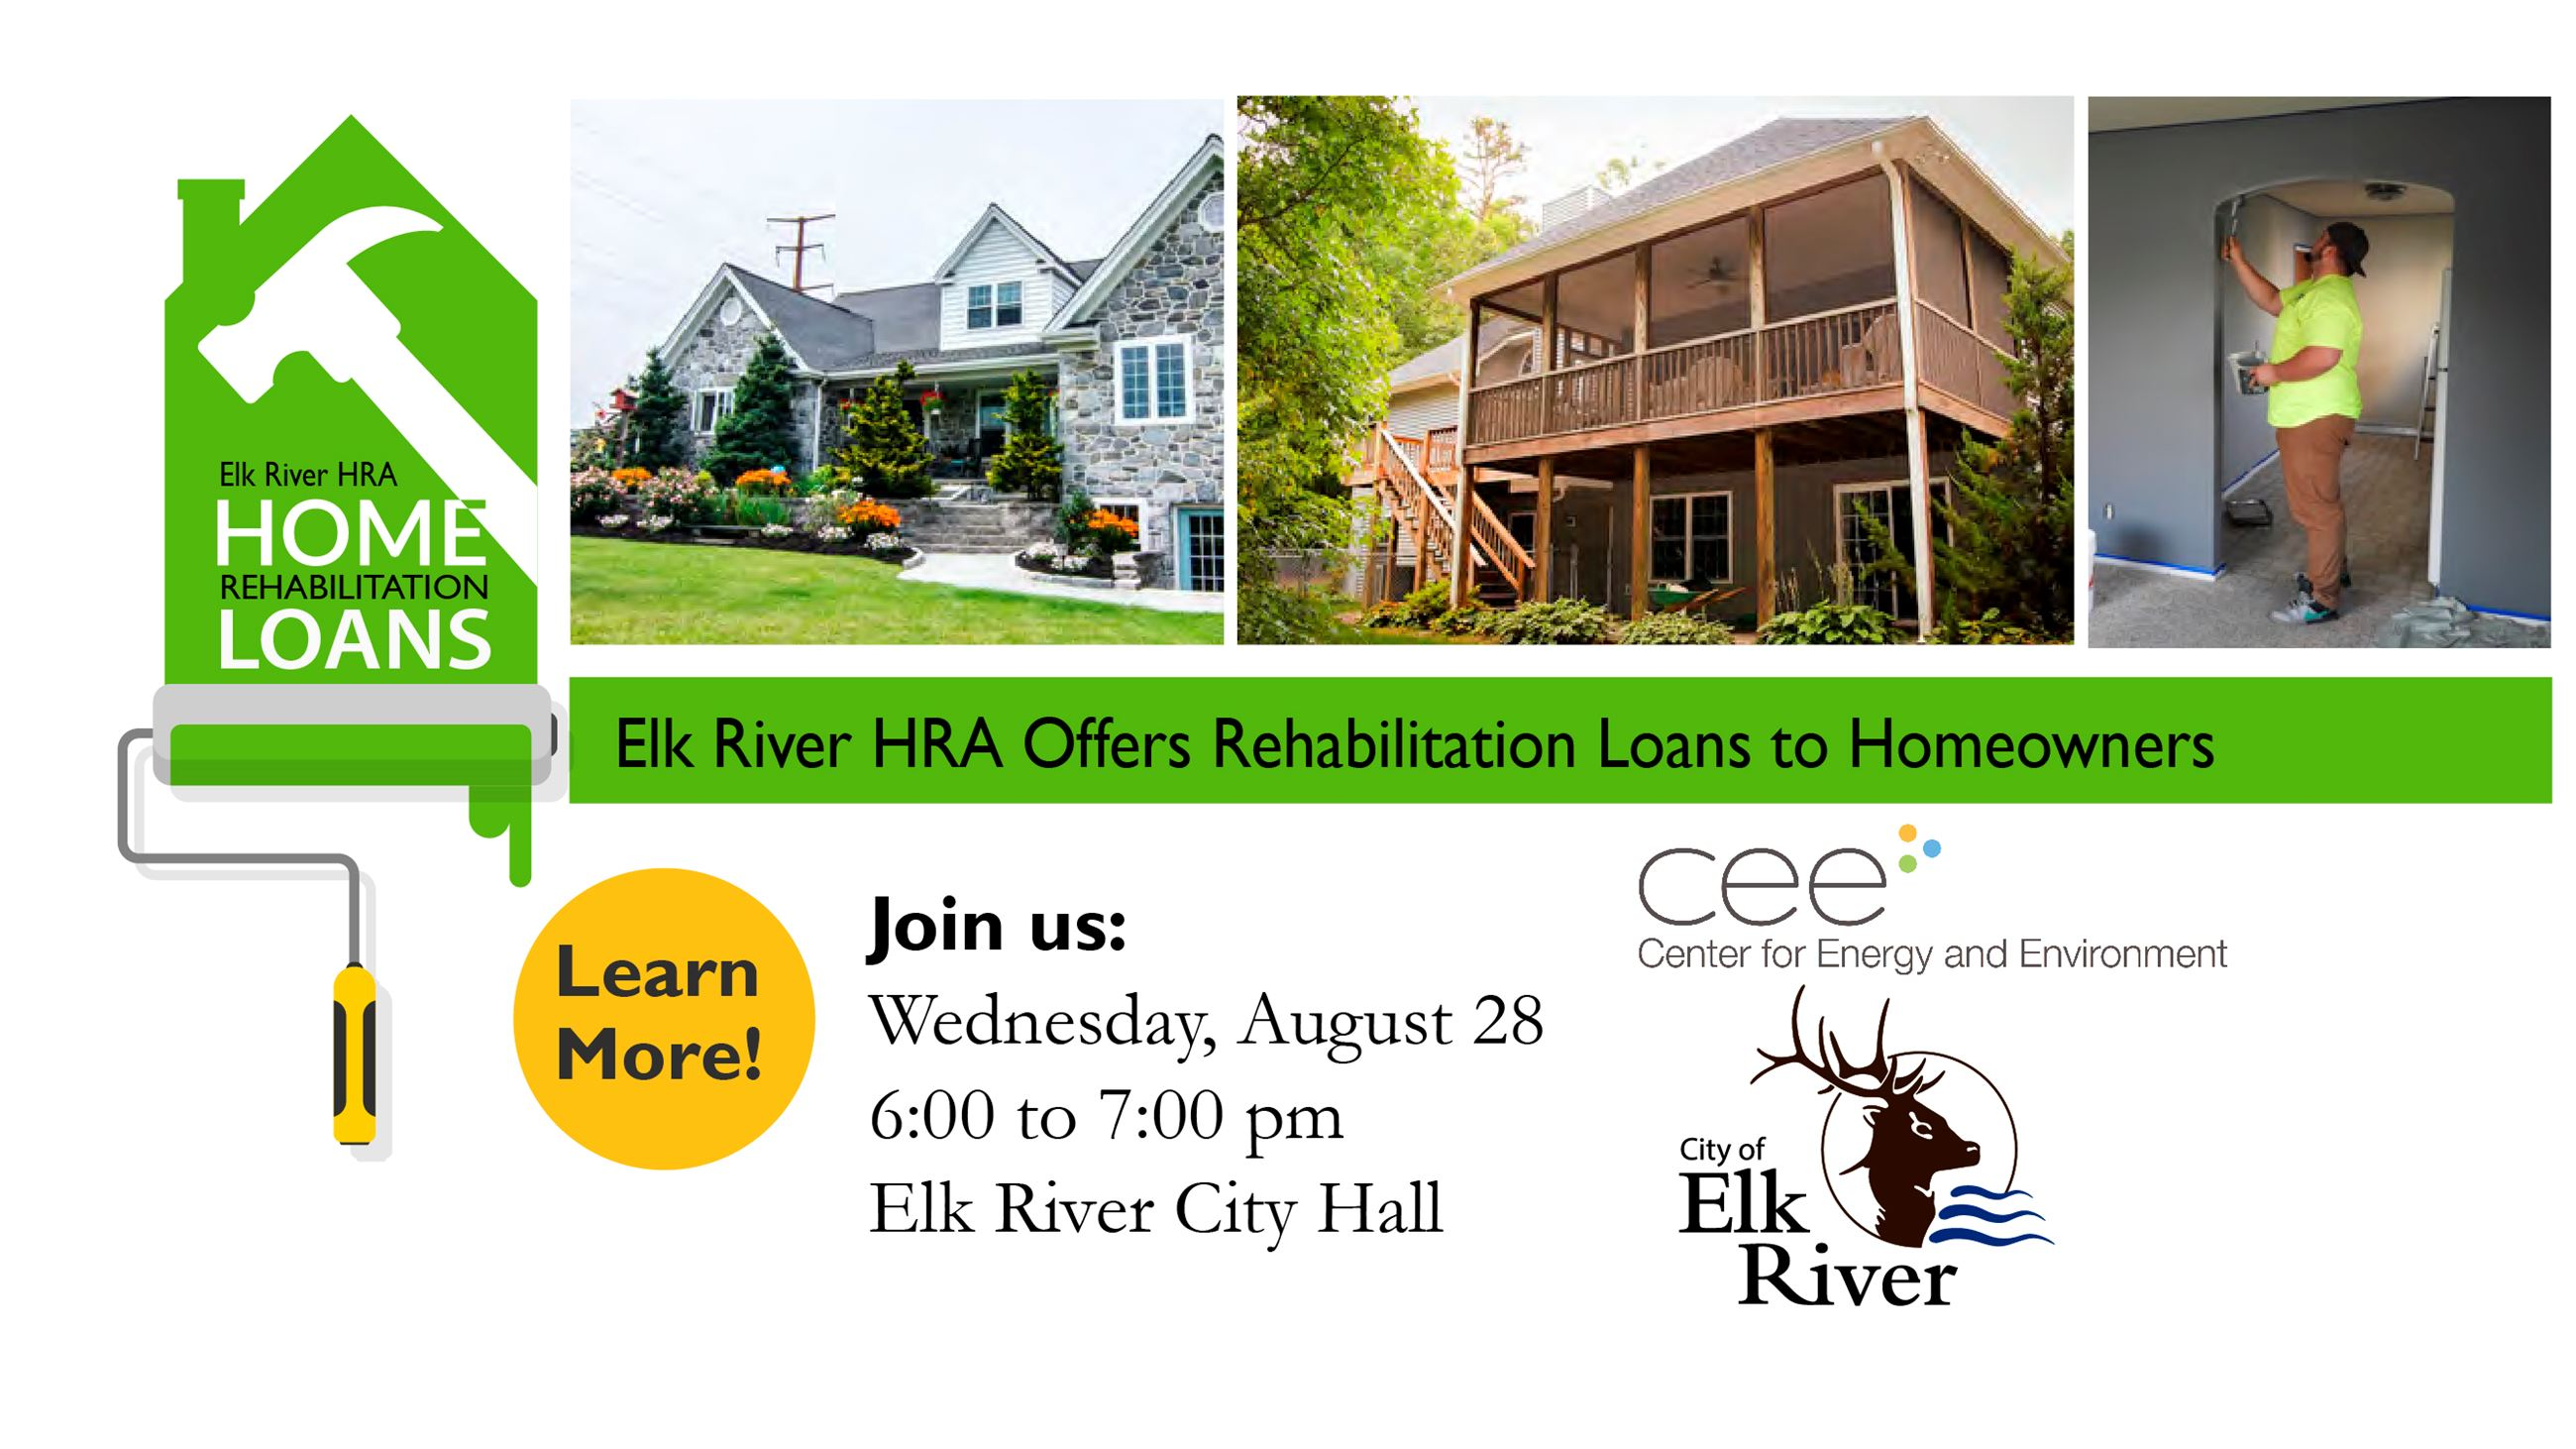 HRA Home Rehabilitation Loan Program